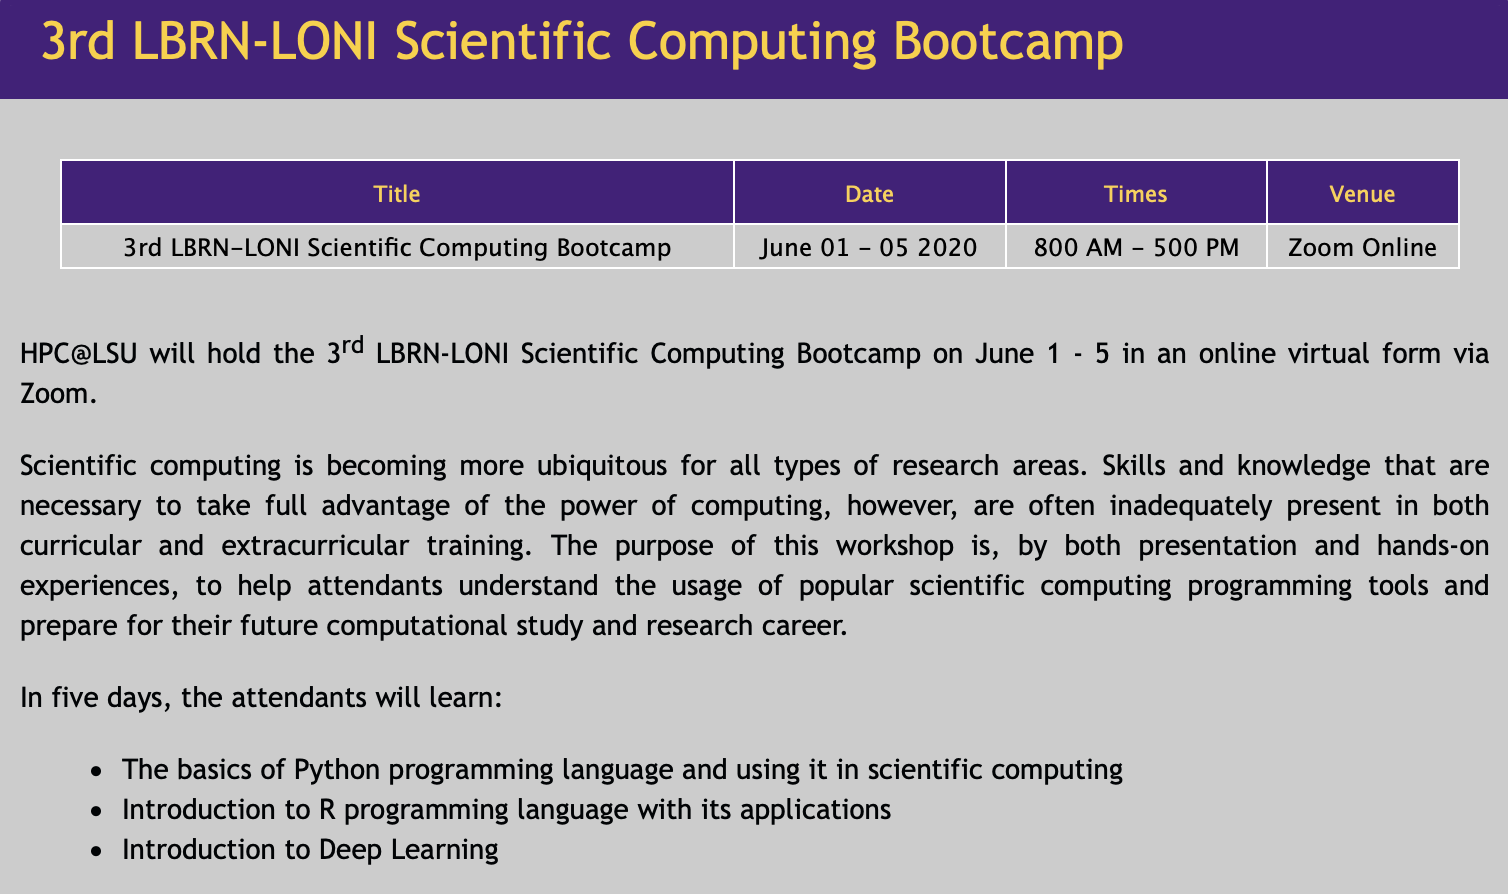 3rd LBRN-LONI Scientific Computing Bootcamp